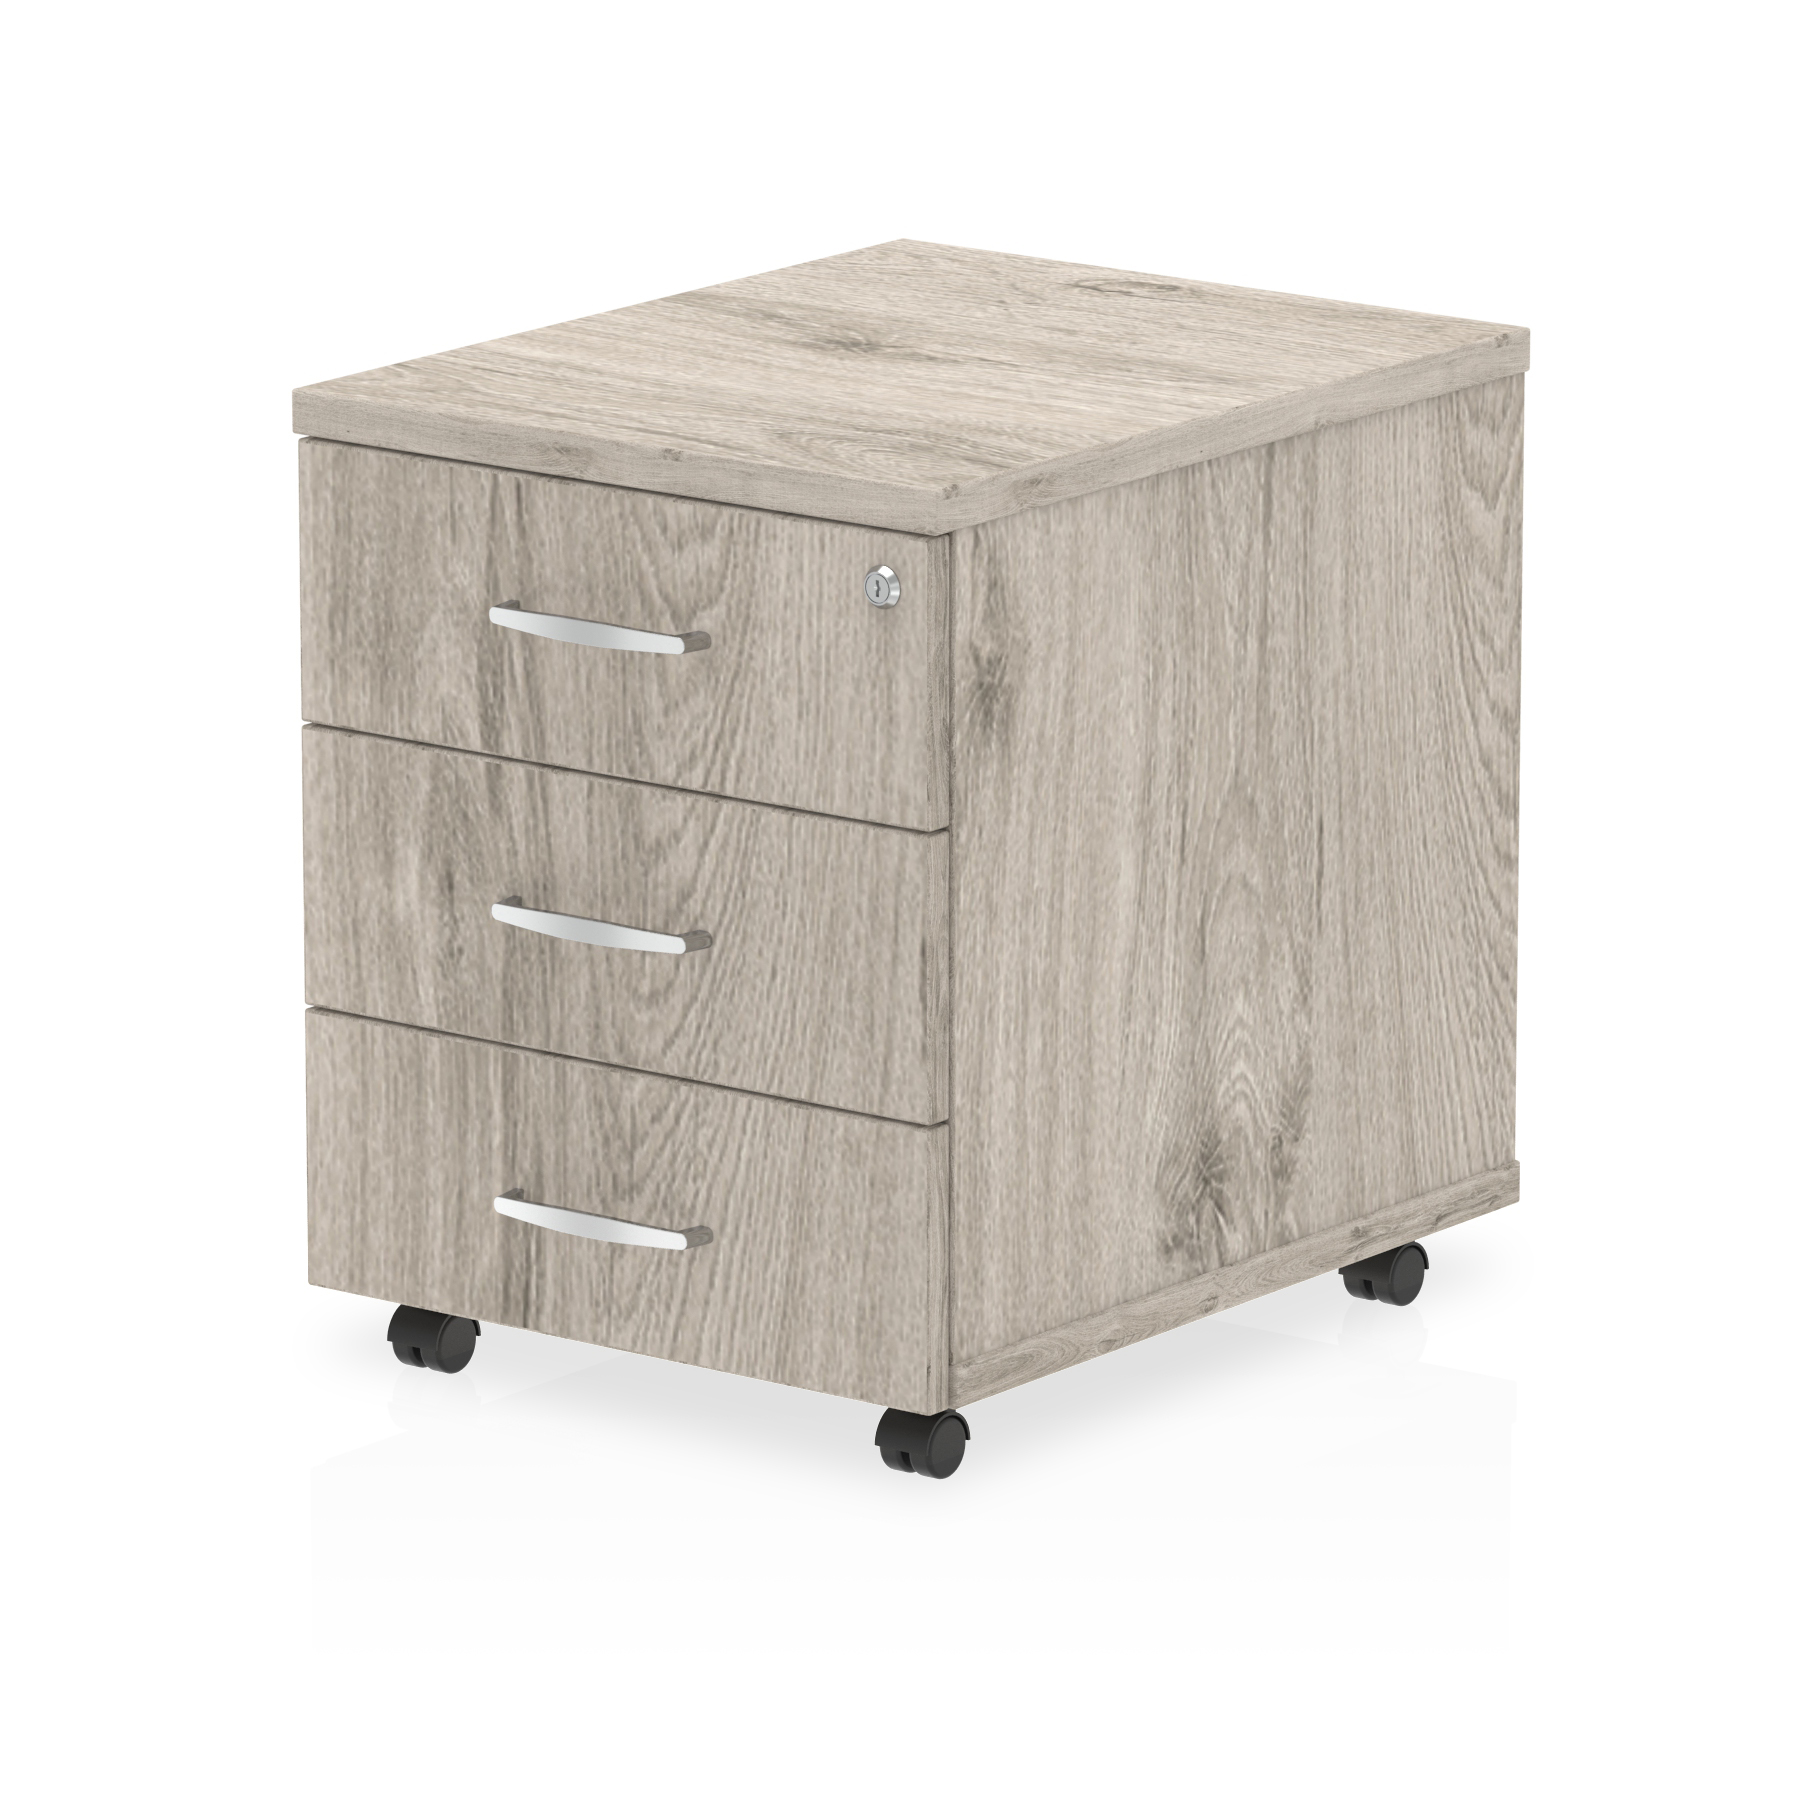 Pedestals Trexus 3 Drawer Mobile Pedestal 430x500x510mm Grey Oak Ref I003224